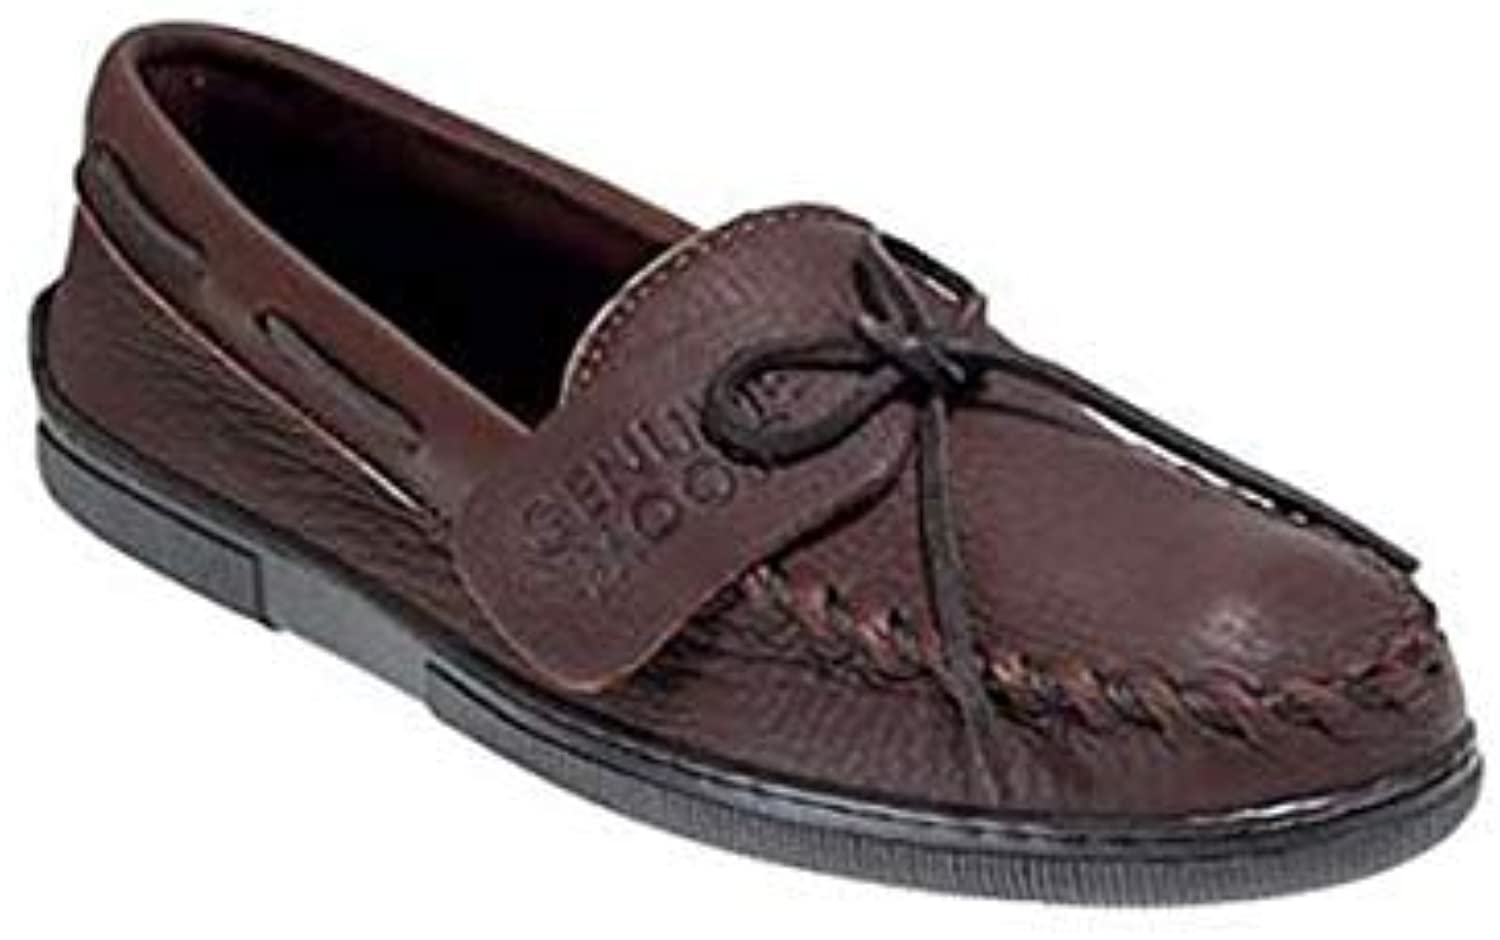 Men's Minnetonka Moccasins ( 892)   color Chocolate Moose   Men's Slip-On Moccasin